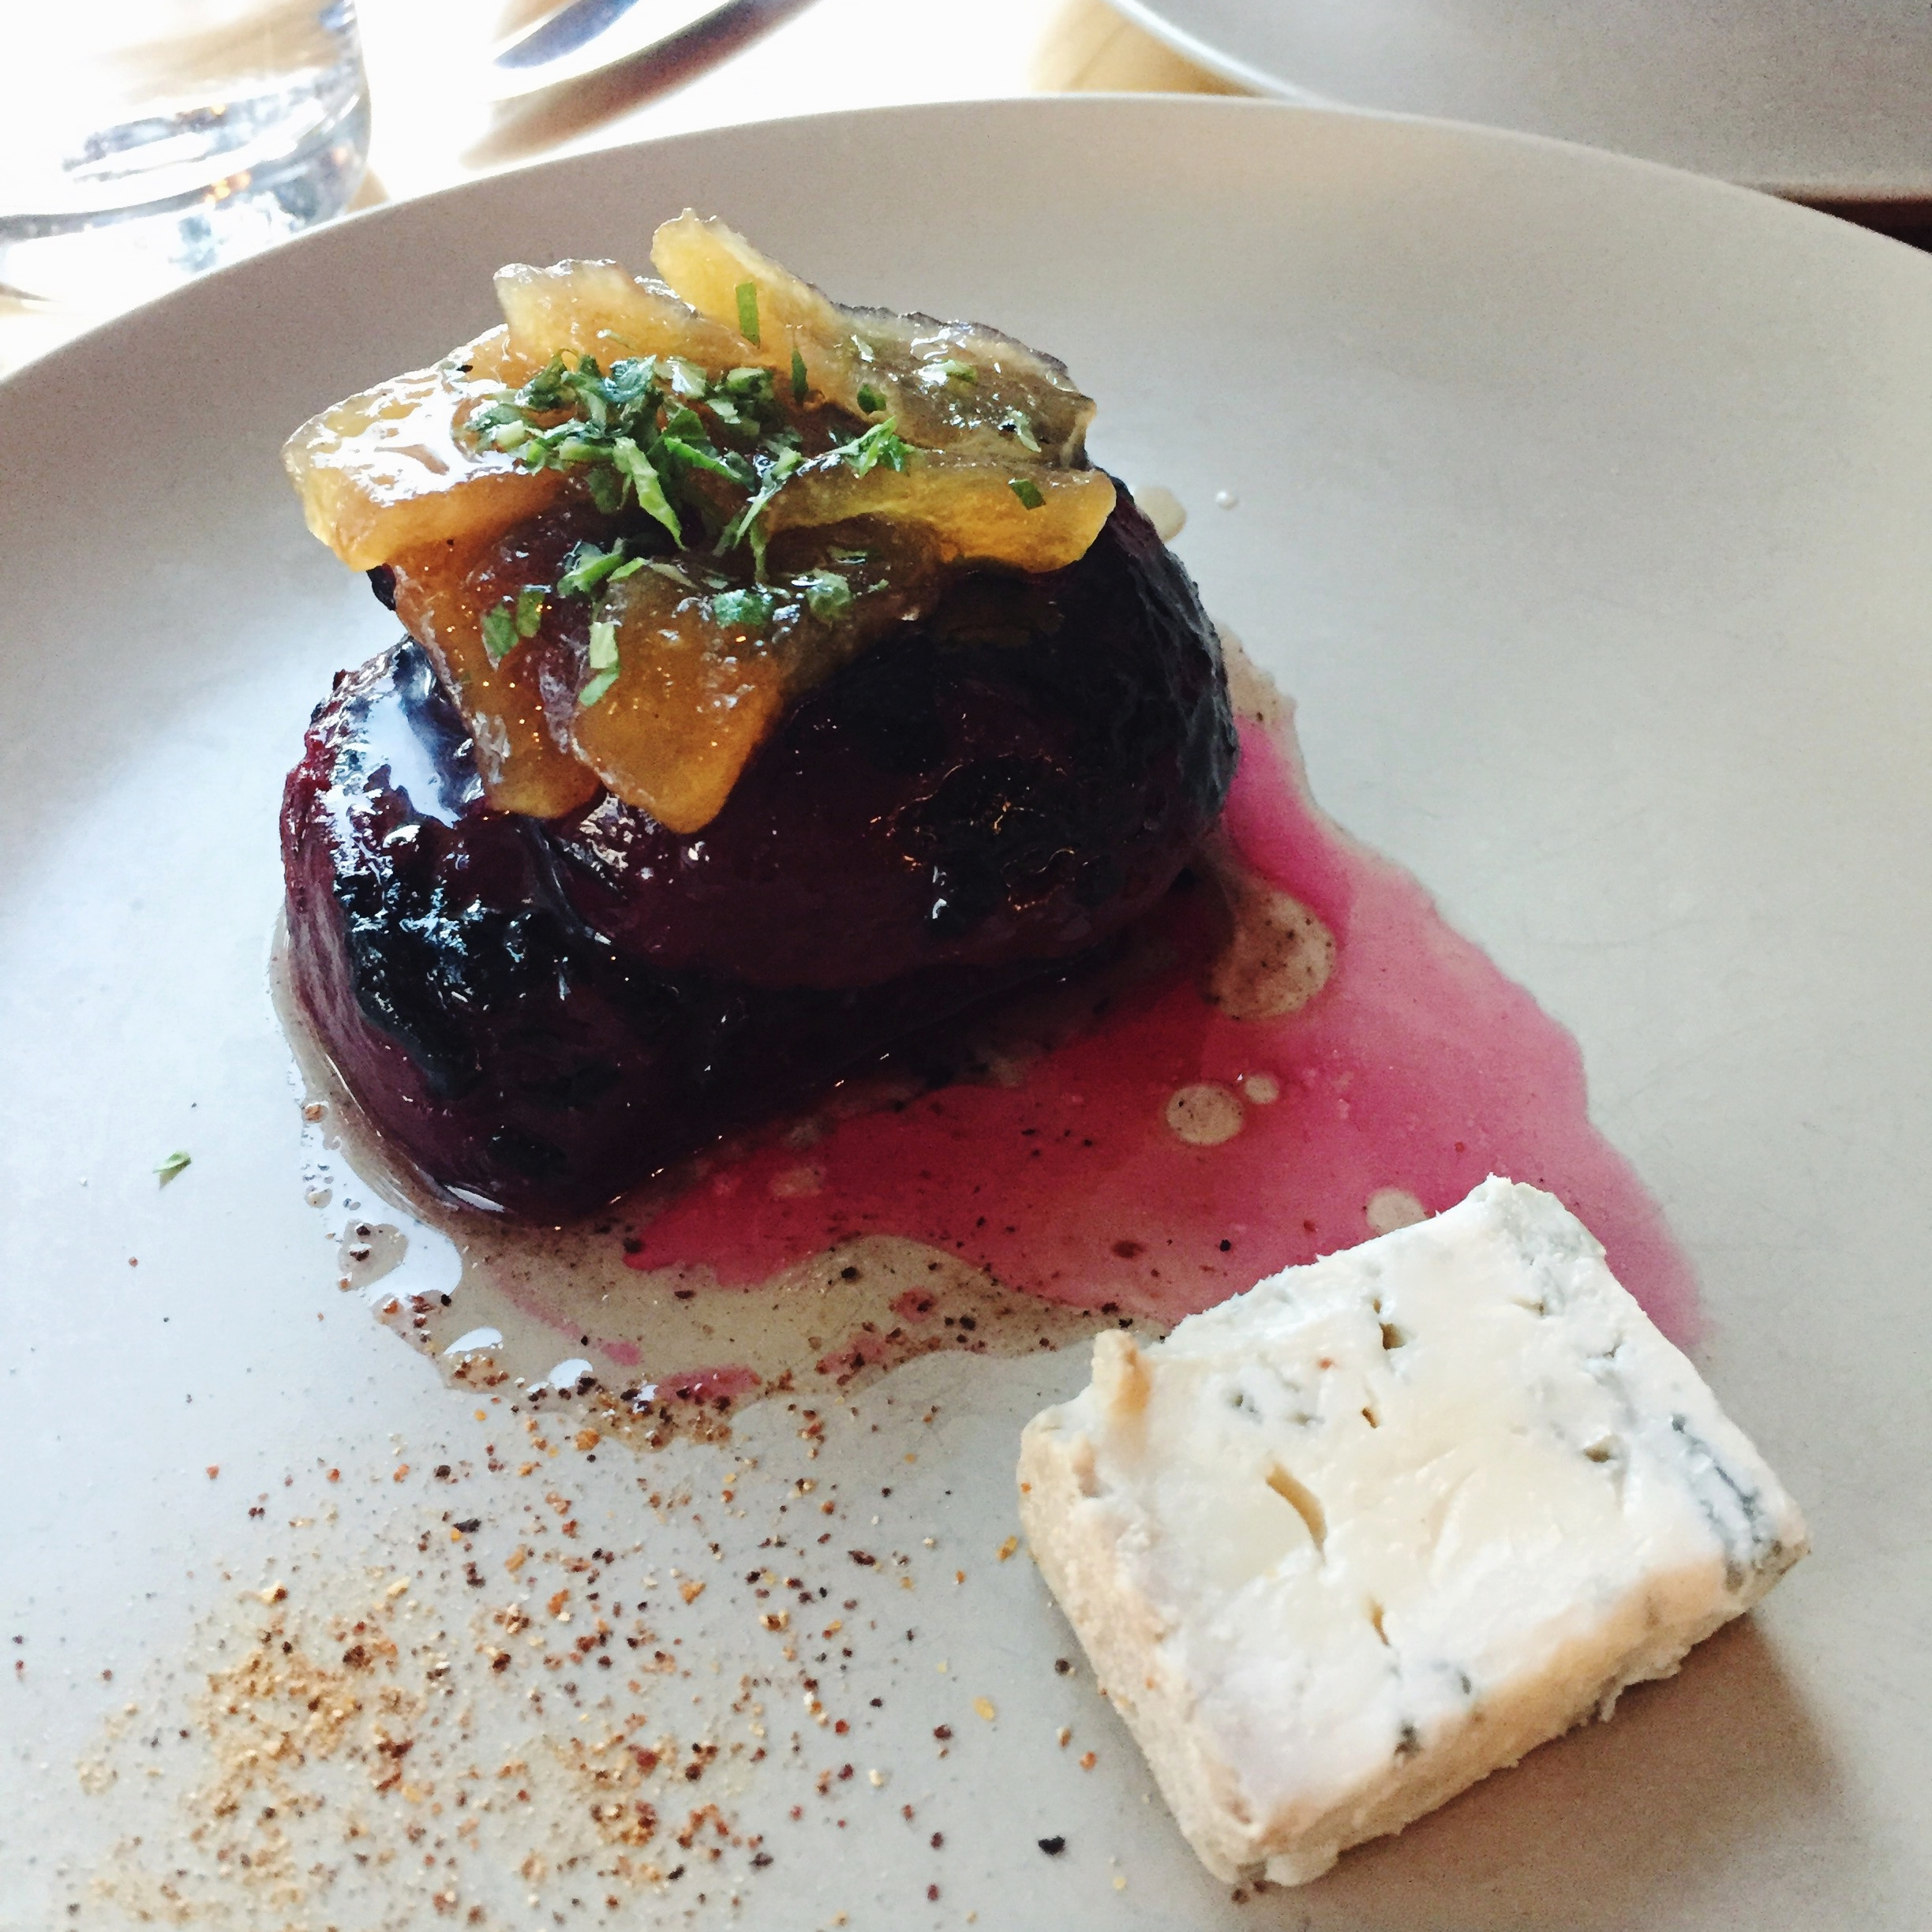 Roasted Beets, Citrus, Pine - $6